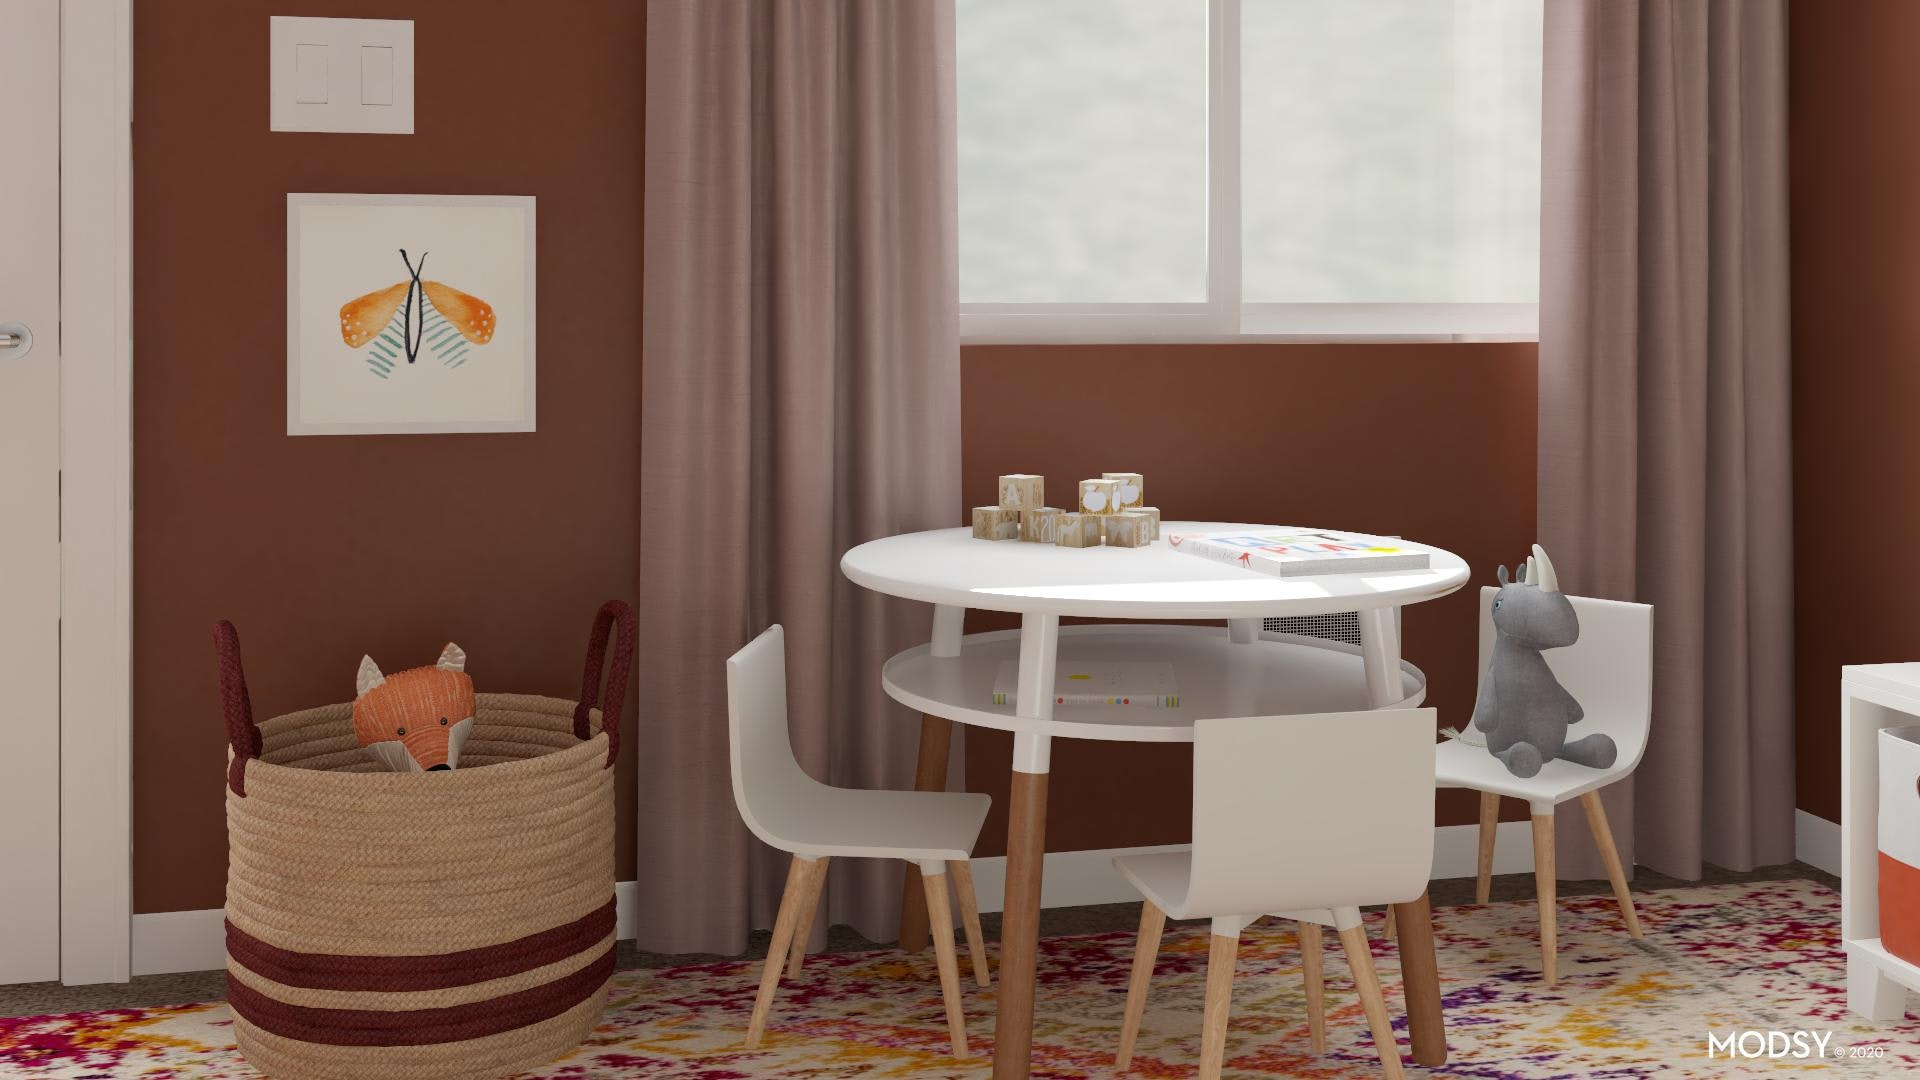 Modern Kids Play Area Contemporary Style Kids Room Design Ideas